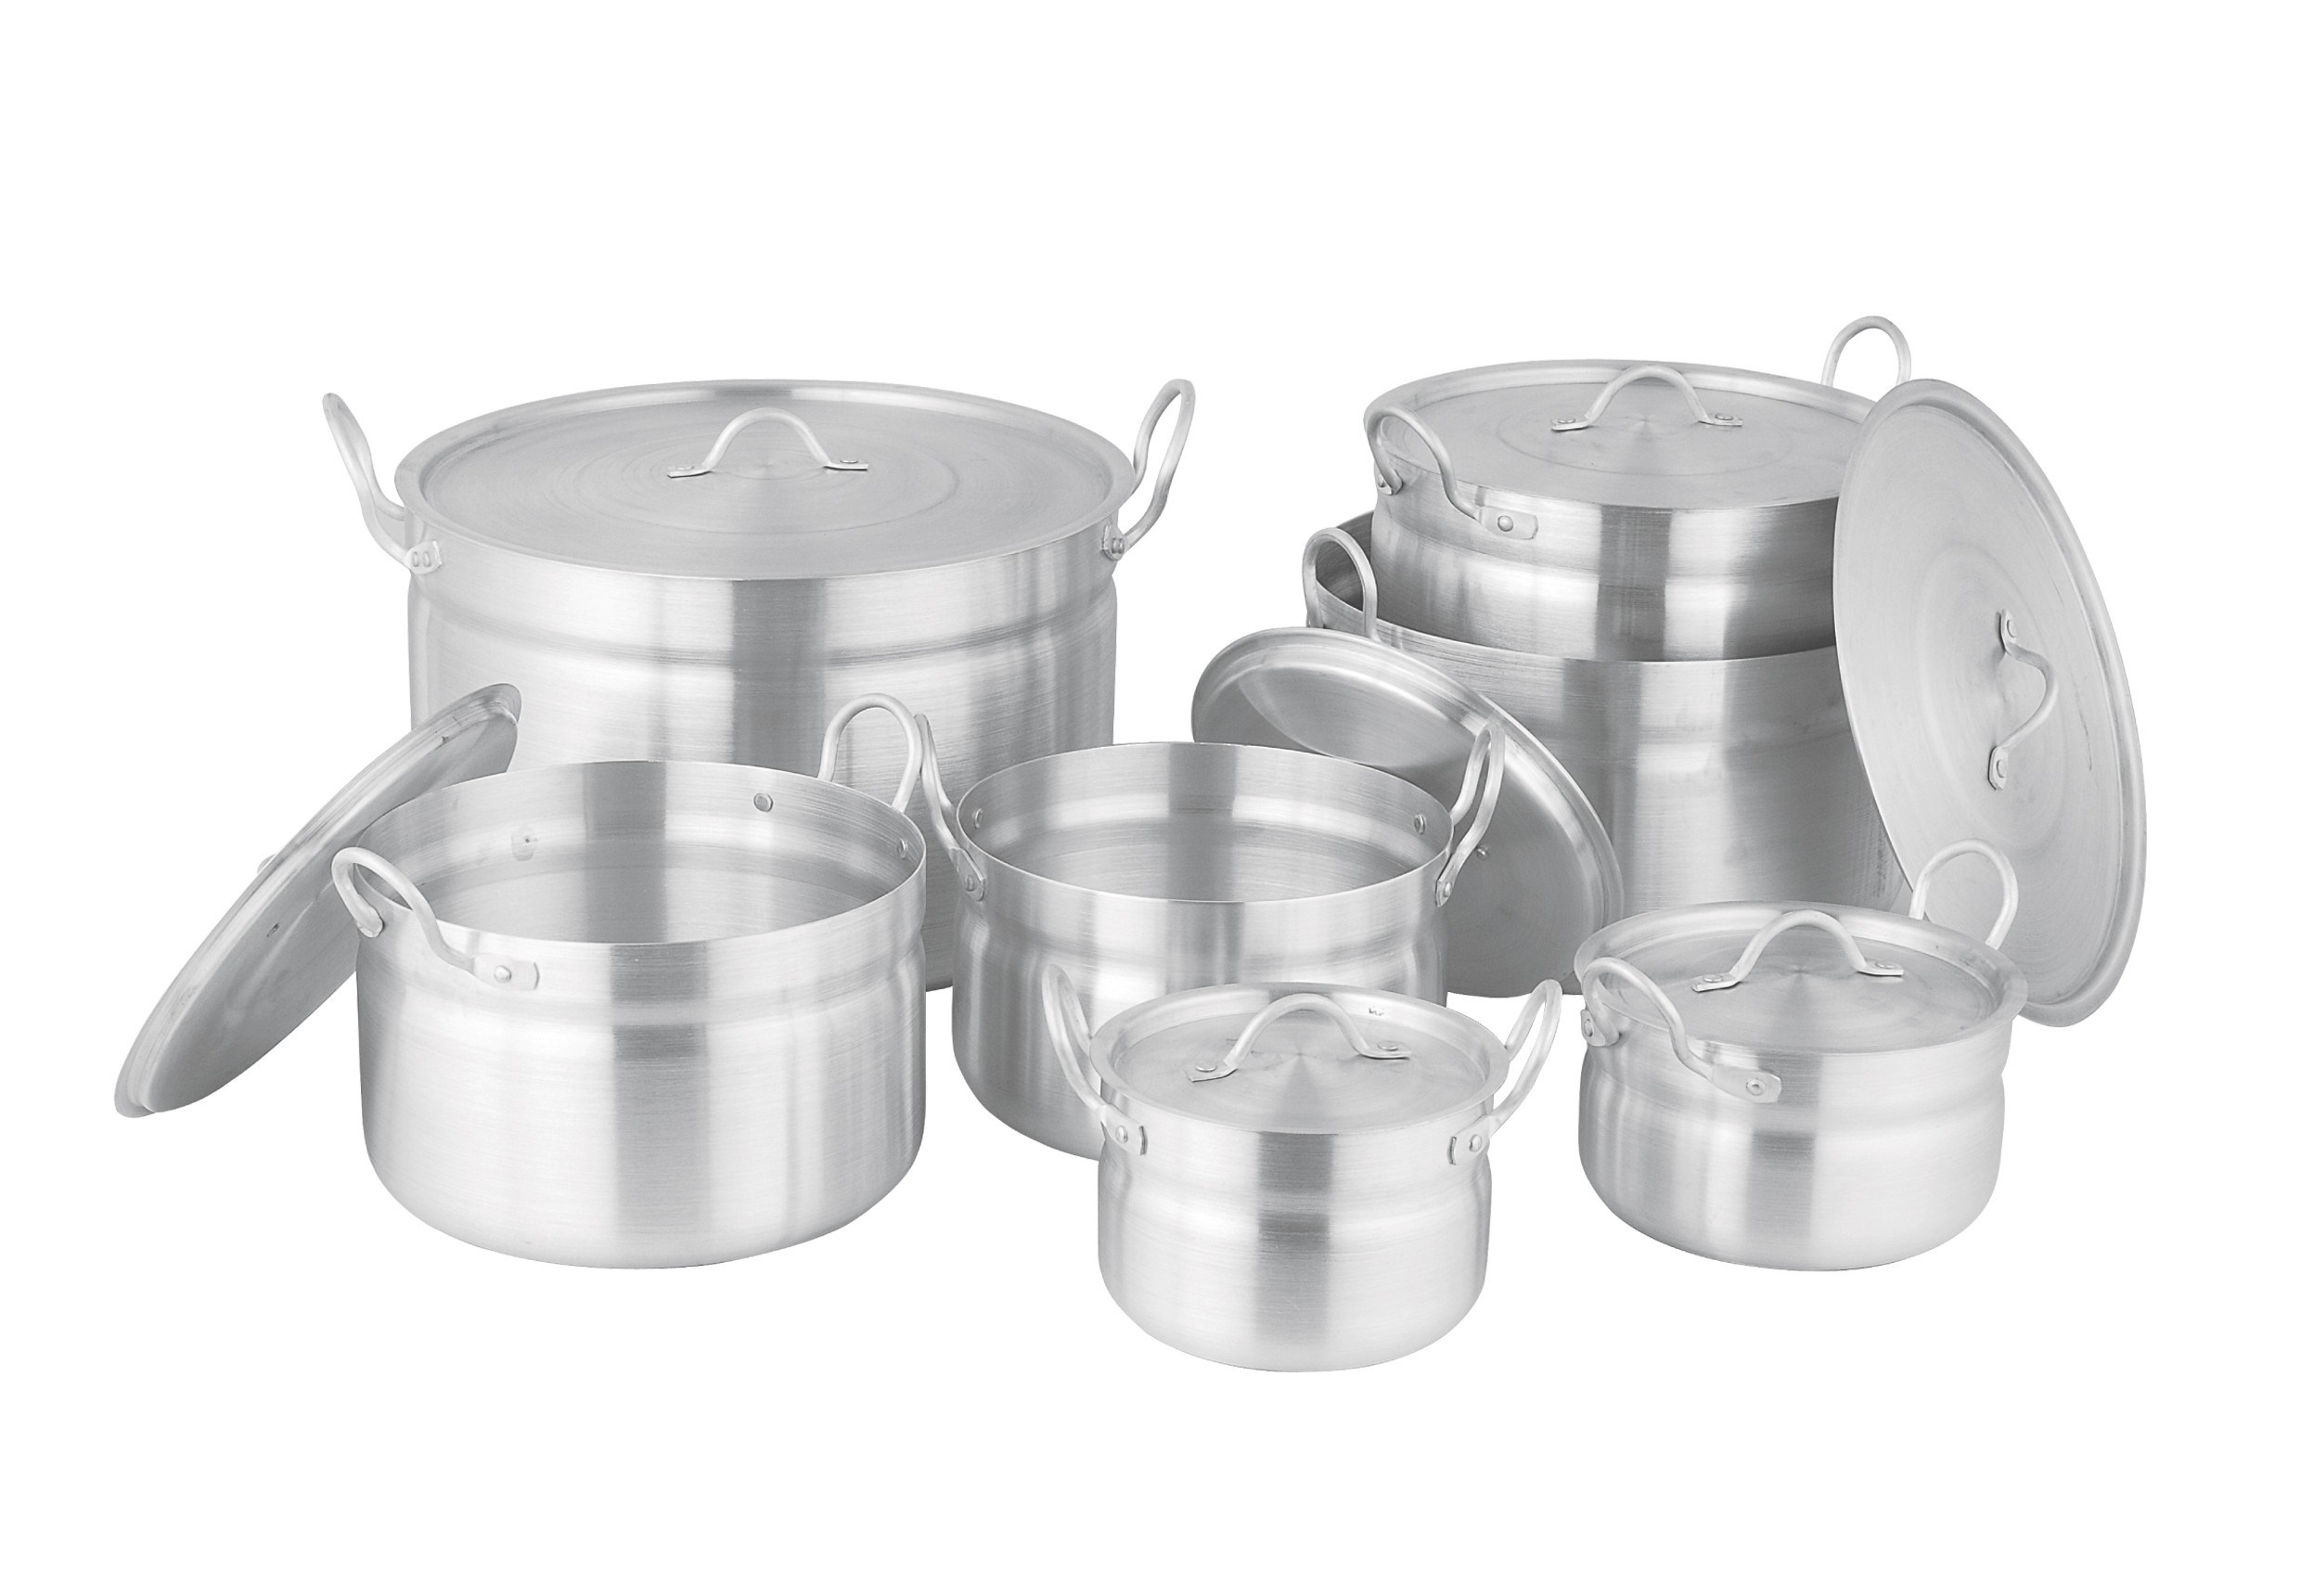 China aluminium cooking pot yk cs010 photos pictures for Aluminum cuisine